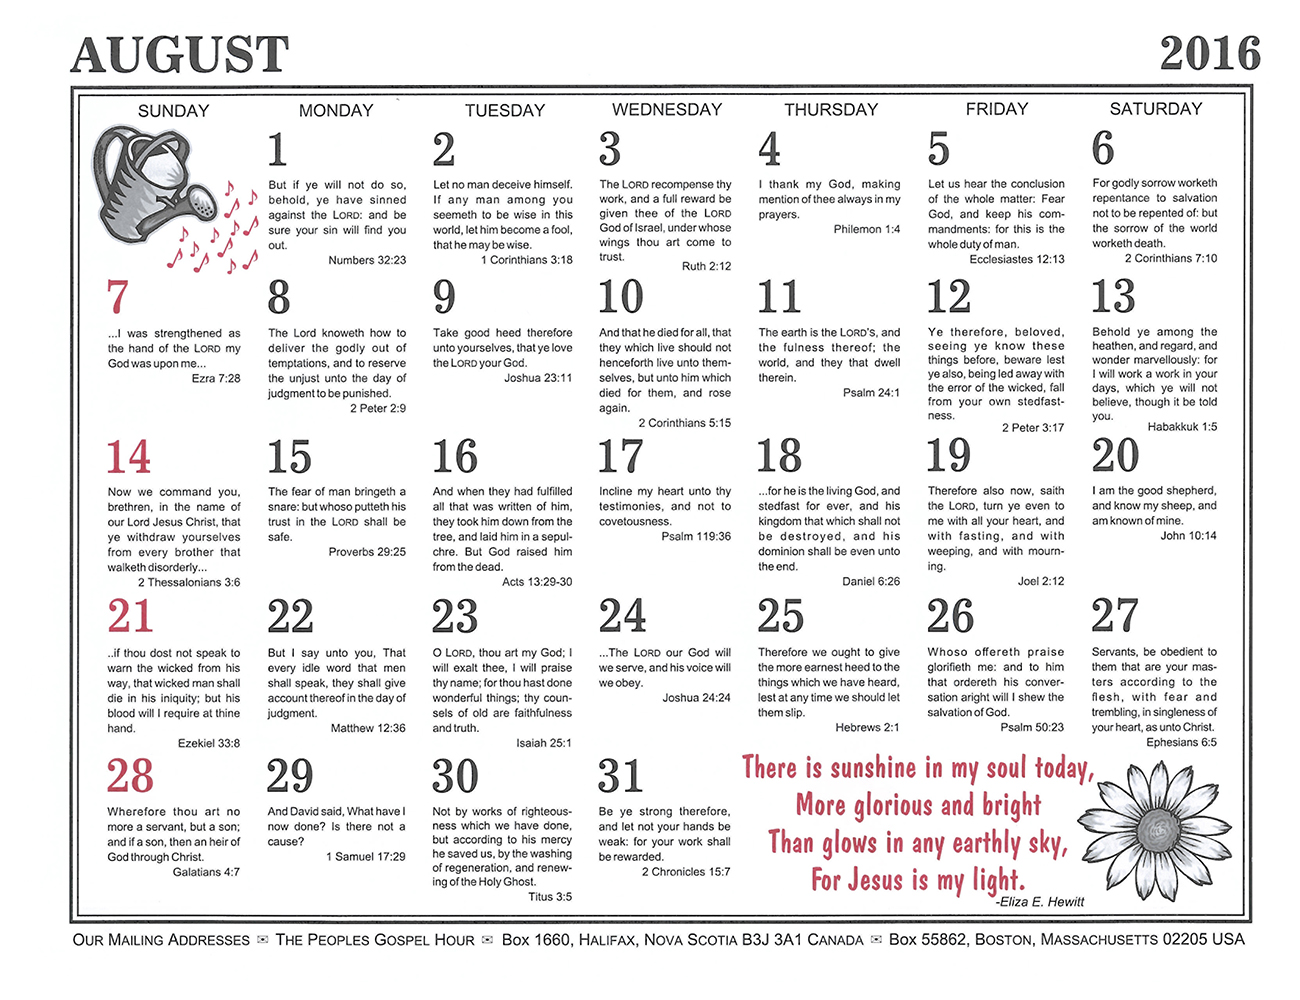 August: 2016 The Peoples Gospel Hour Calendar